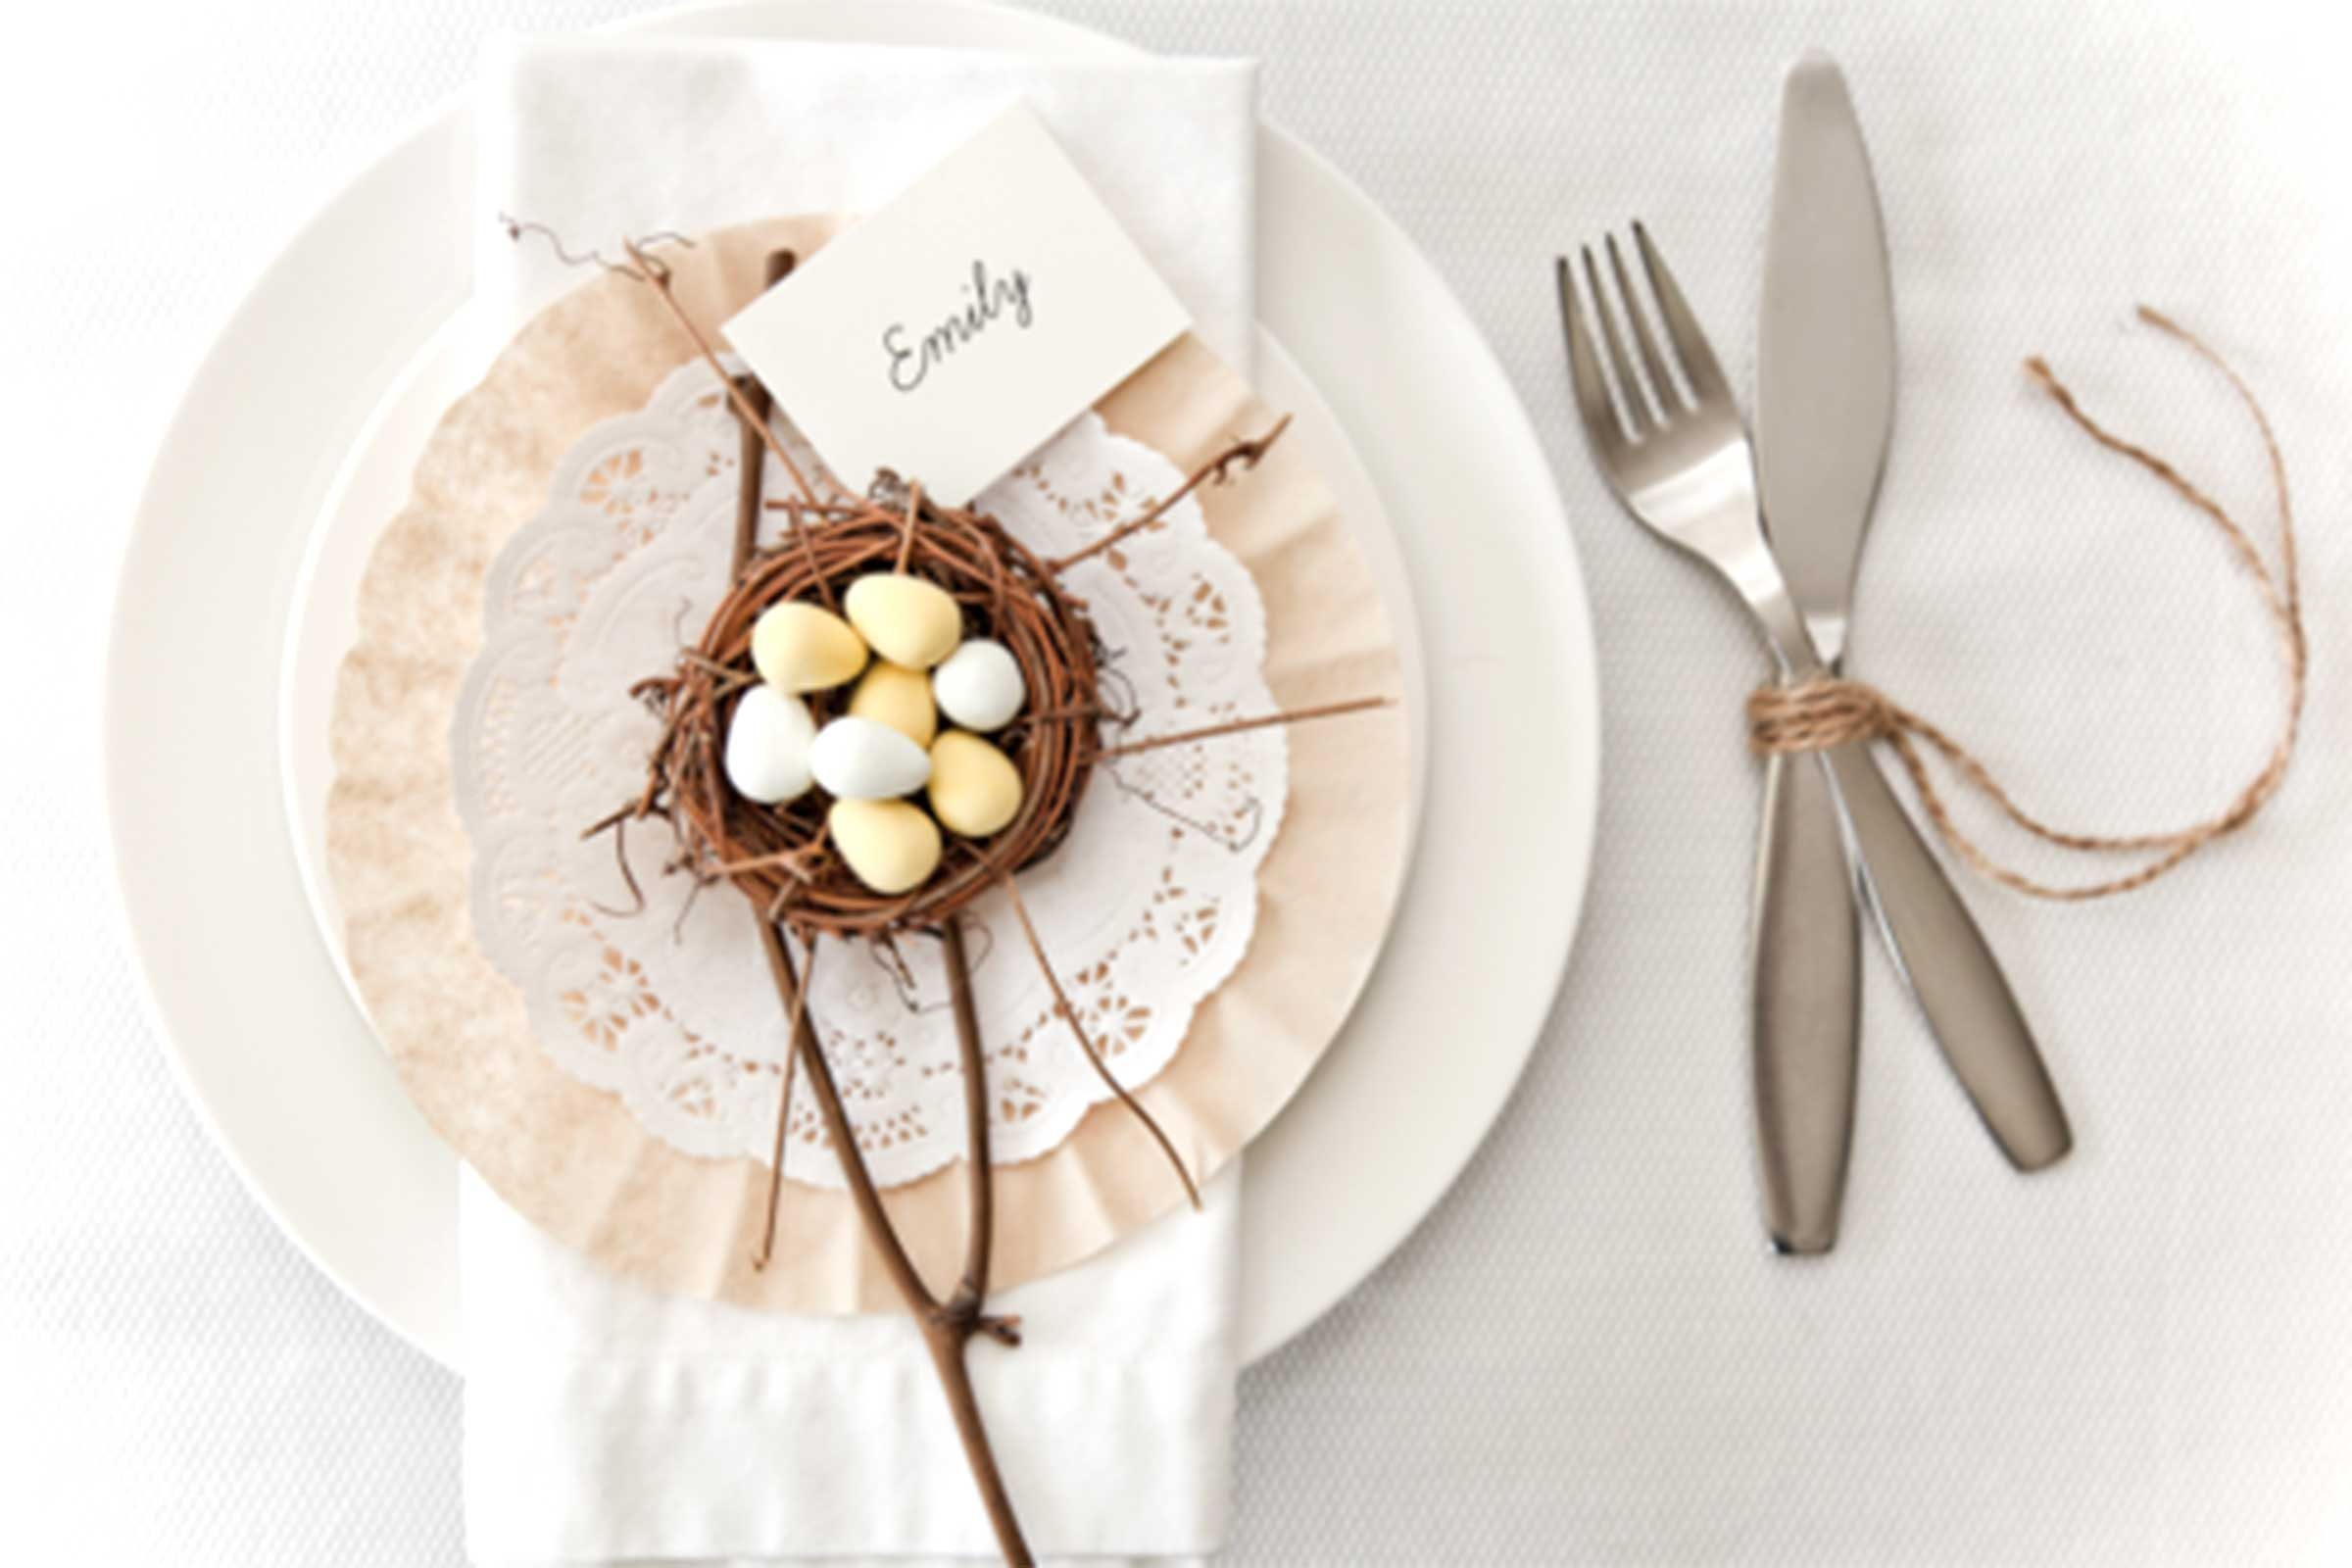 Nest Table Settings & Easter Crafts to Brighten Any Home | Readeru0027s Digest